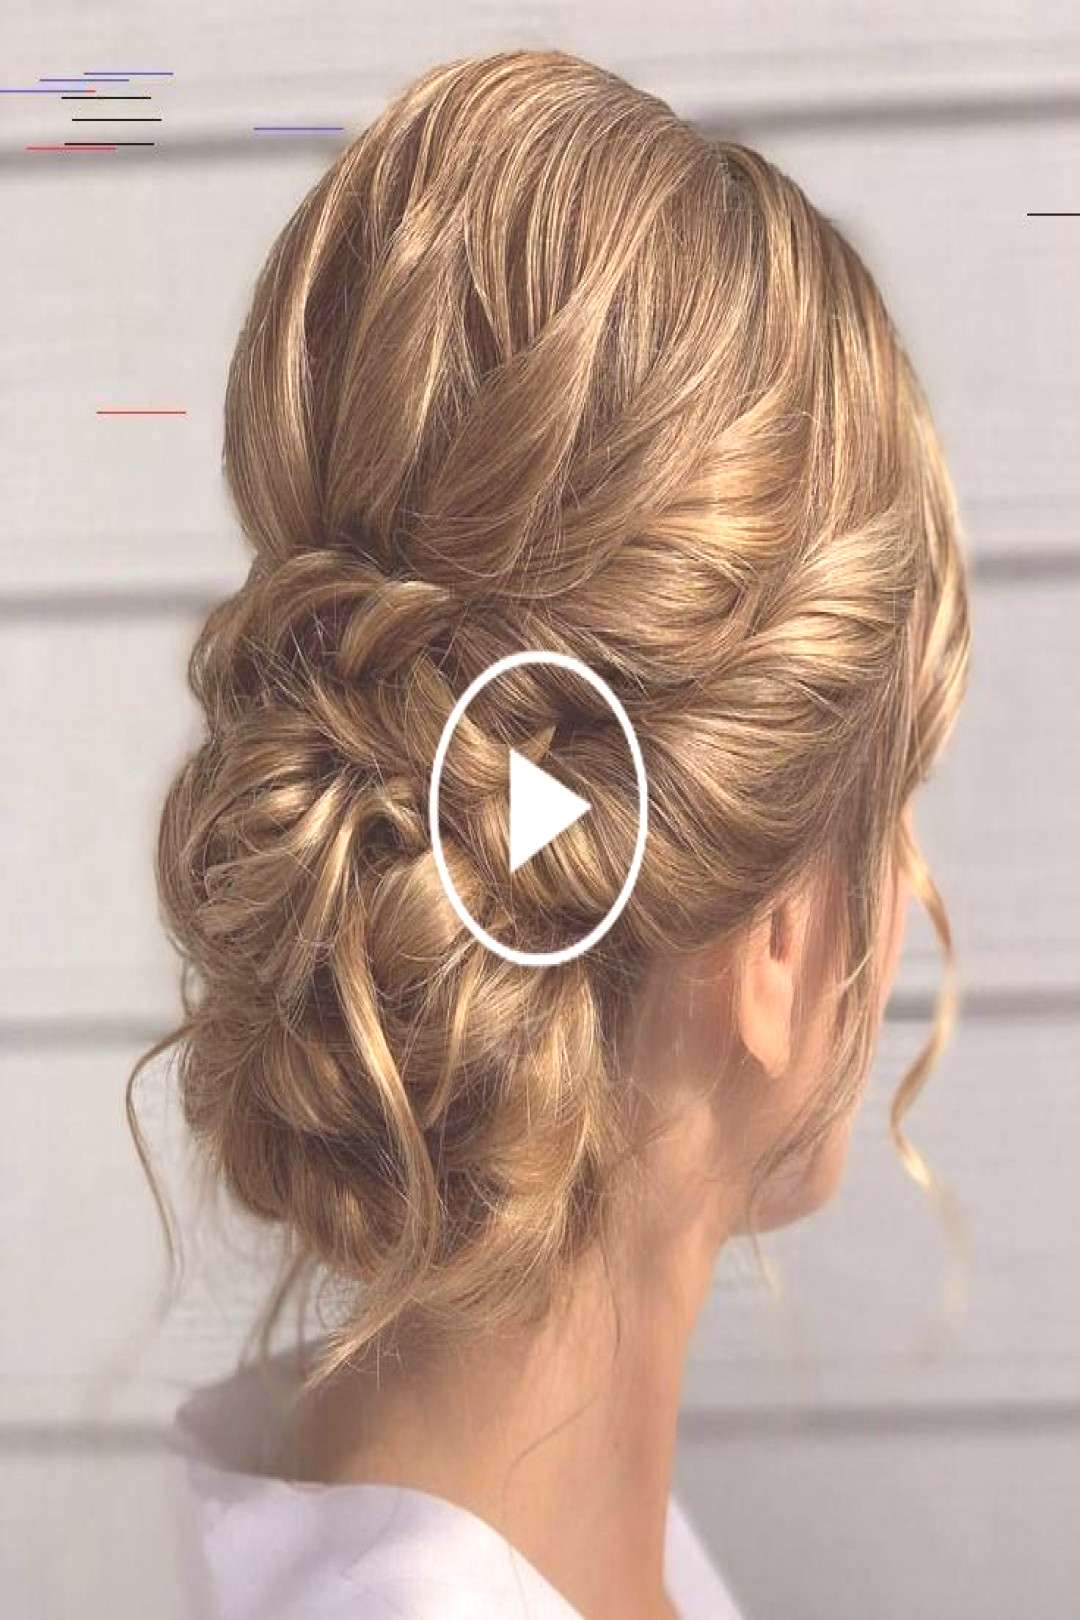 Over 100 ideas for bridal hairstyles long You will like the fancy try making your hair dress? Or Ov